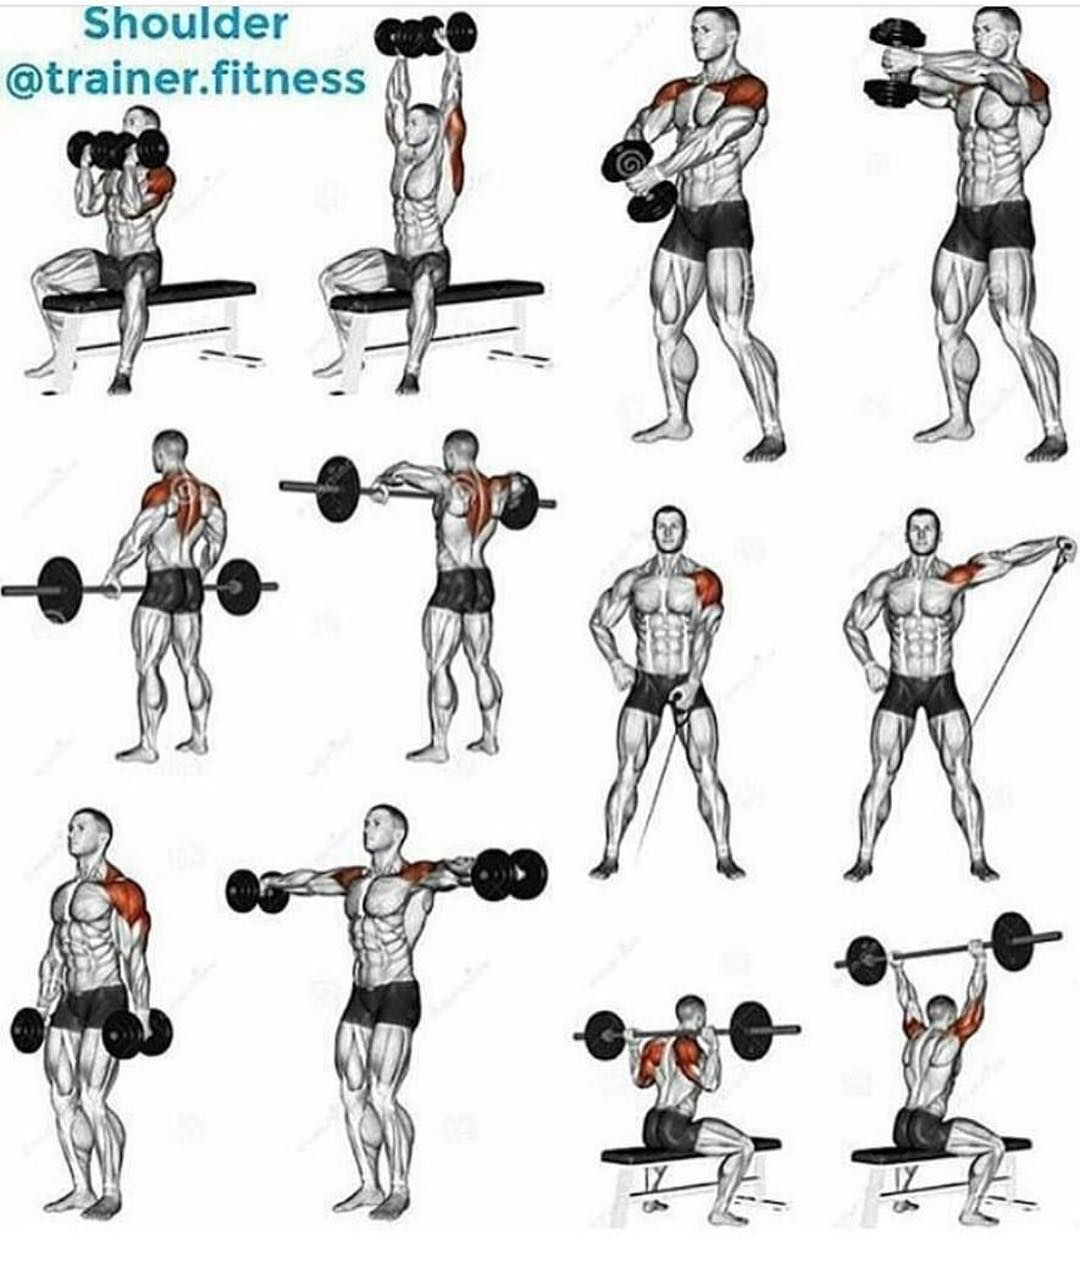 Gym Workout Chart For Chest For Men Total Gym 1900 Exercise Machines Discipline Shoulder